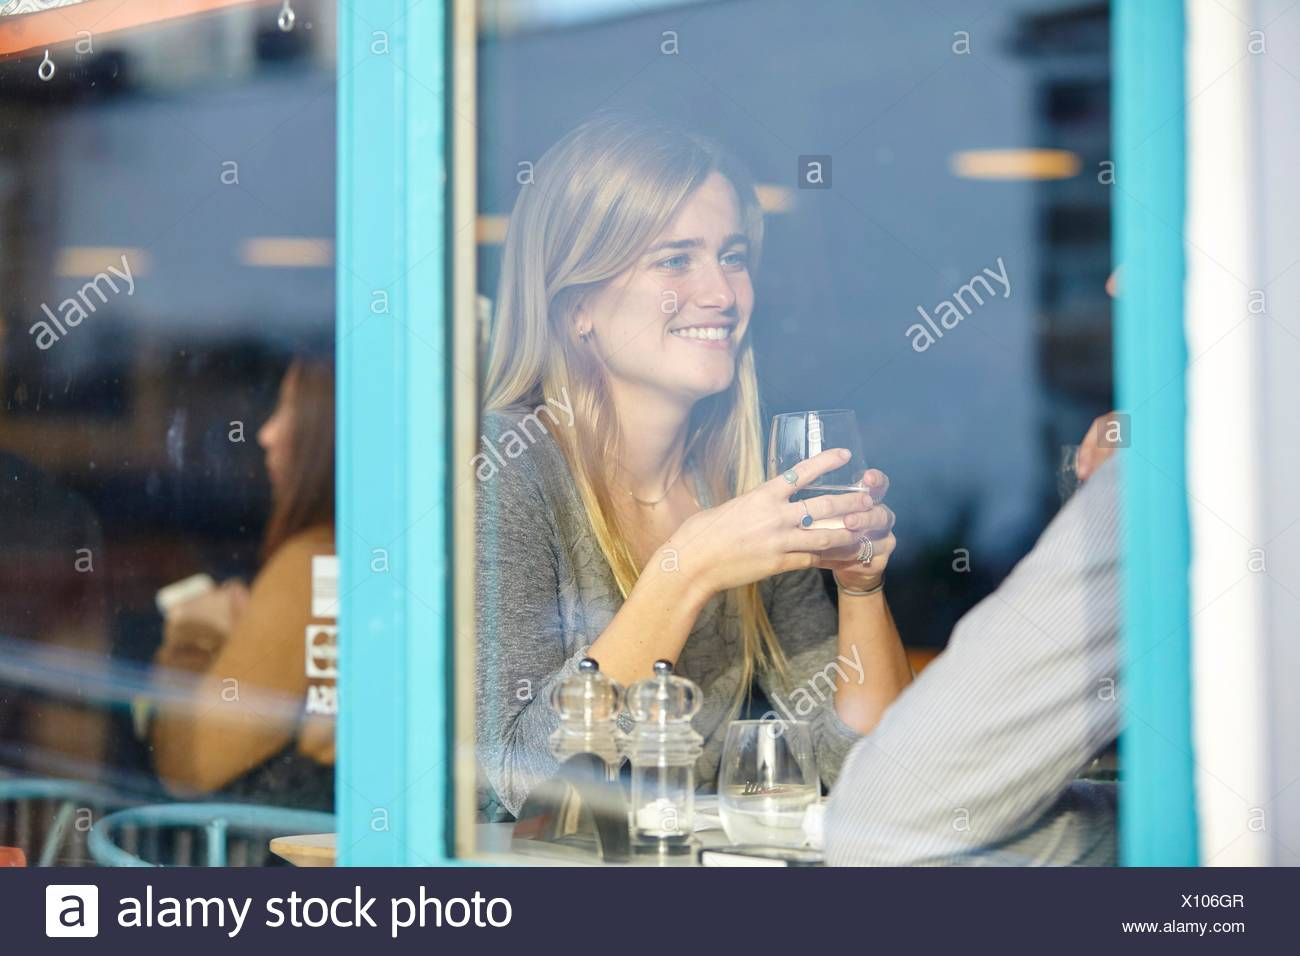 Romantic young couple at cafe having lunch date - Stock Image